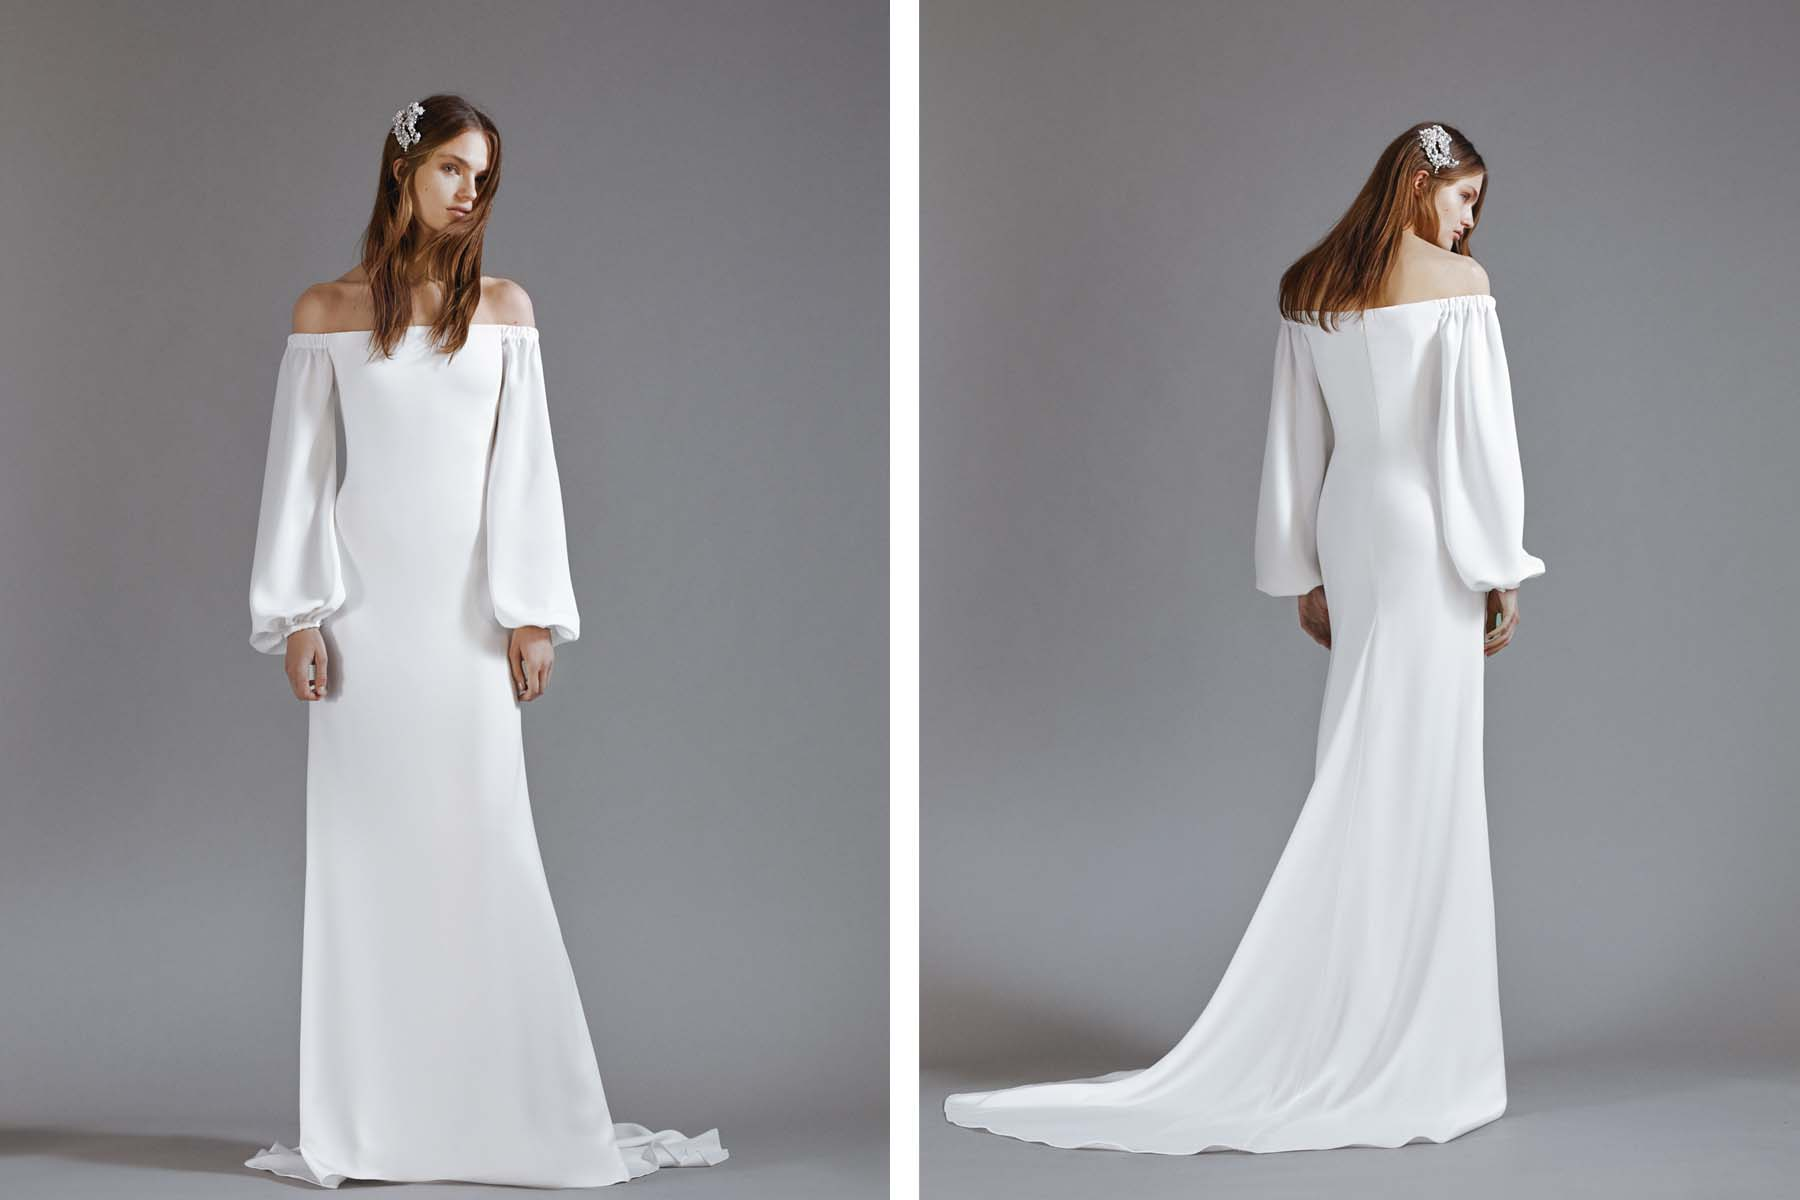 eternal-bridal-bridal-accessories-pairing-for-galia-lahav-prer-a-porter-collection-6